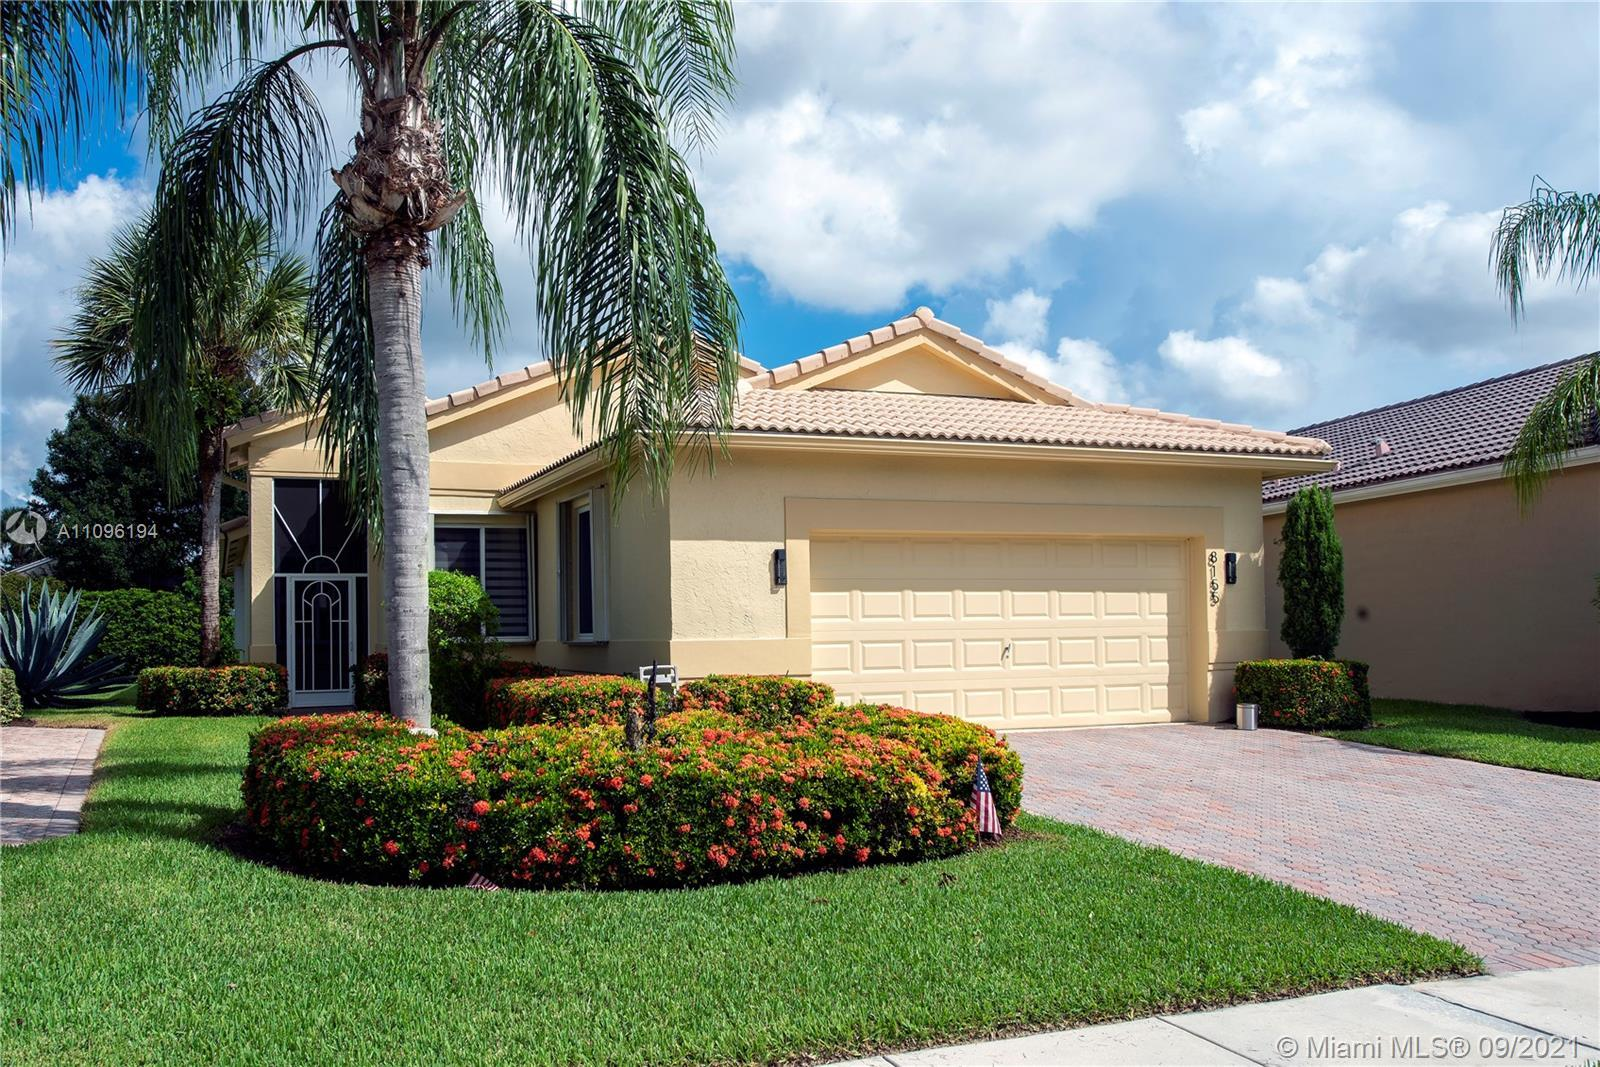 Excellent newly updated Mediterranean style home located in the Sorrento Subdivision of Venetian Isl